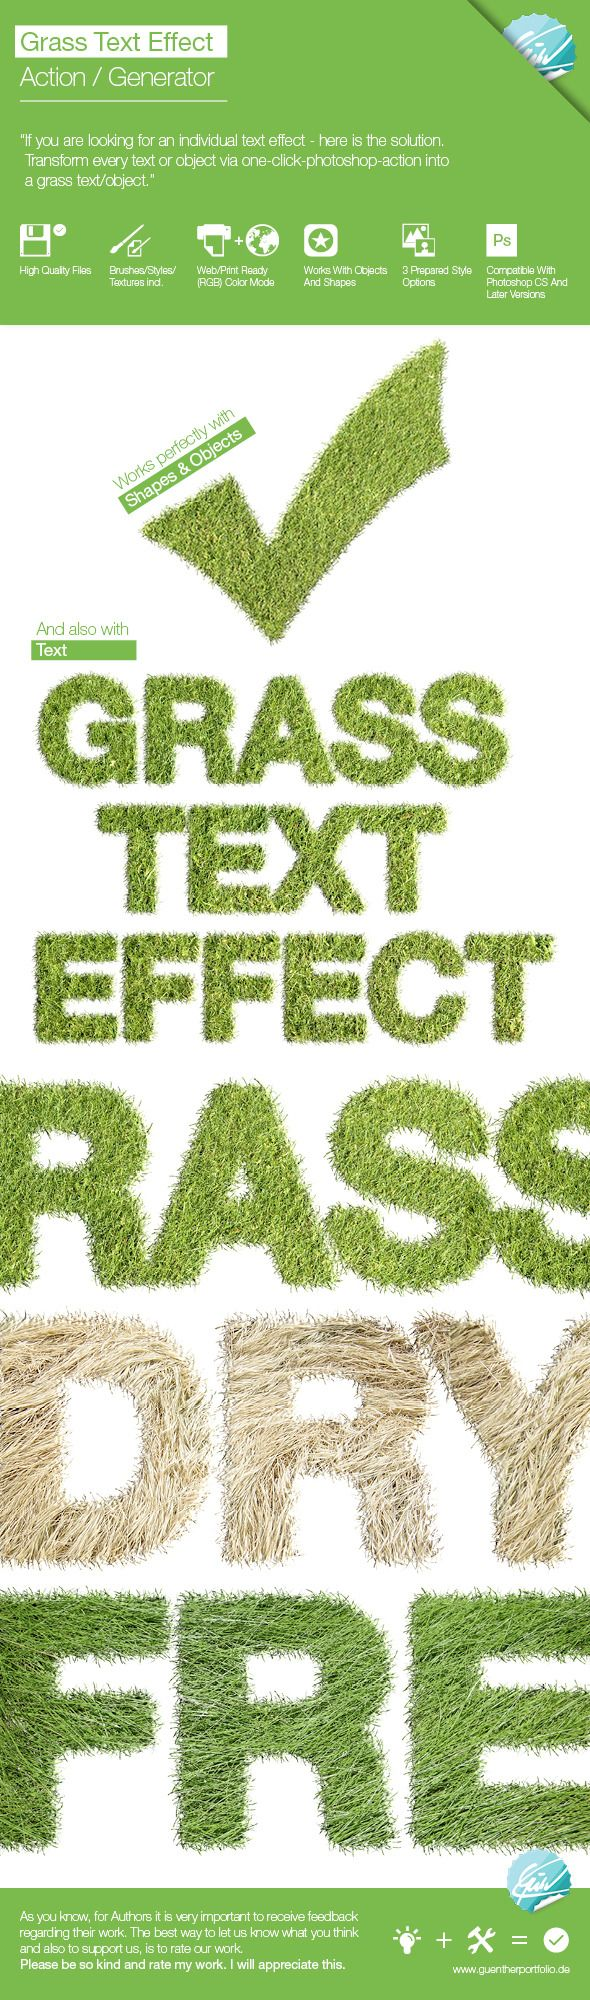 Realistic Grass Effect / Generator. Add-ons Photoshop Actions. To help find this action, app, brush, dry, dry grass, font, generator, grass, green, high resolution, iphone, object, one click, photorealistic, print, realistic, sand, shape, style, text, texture, and web.